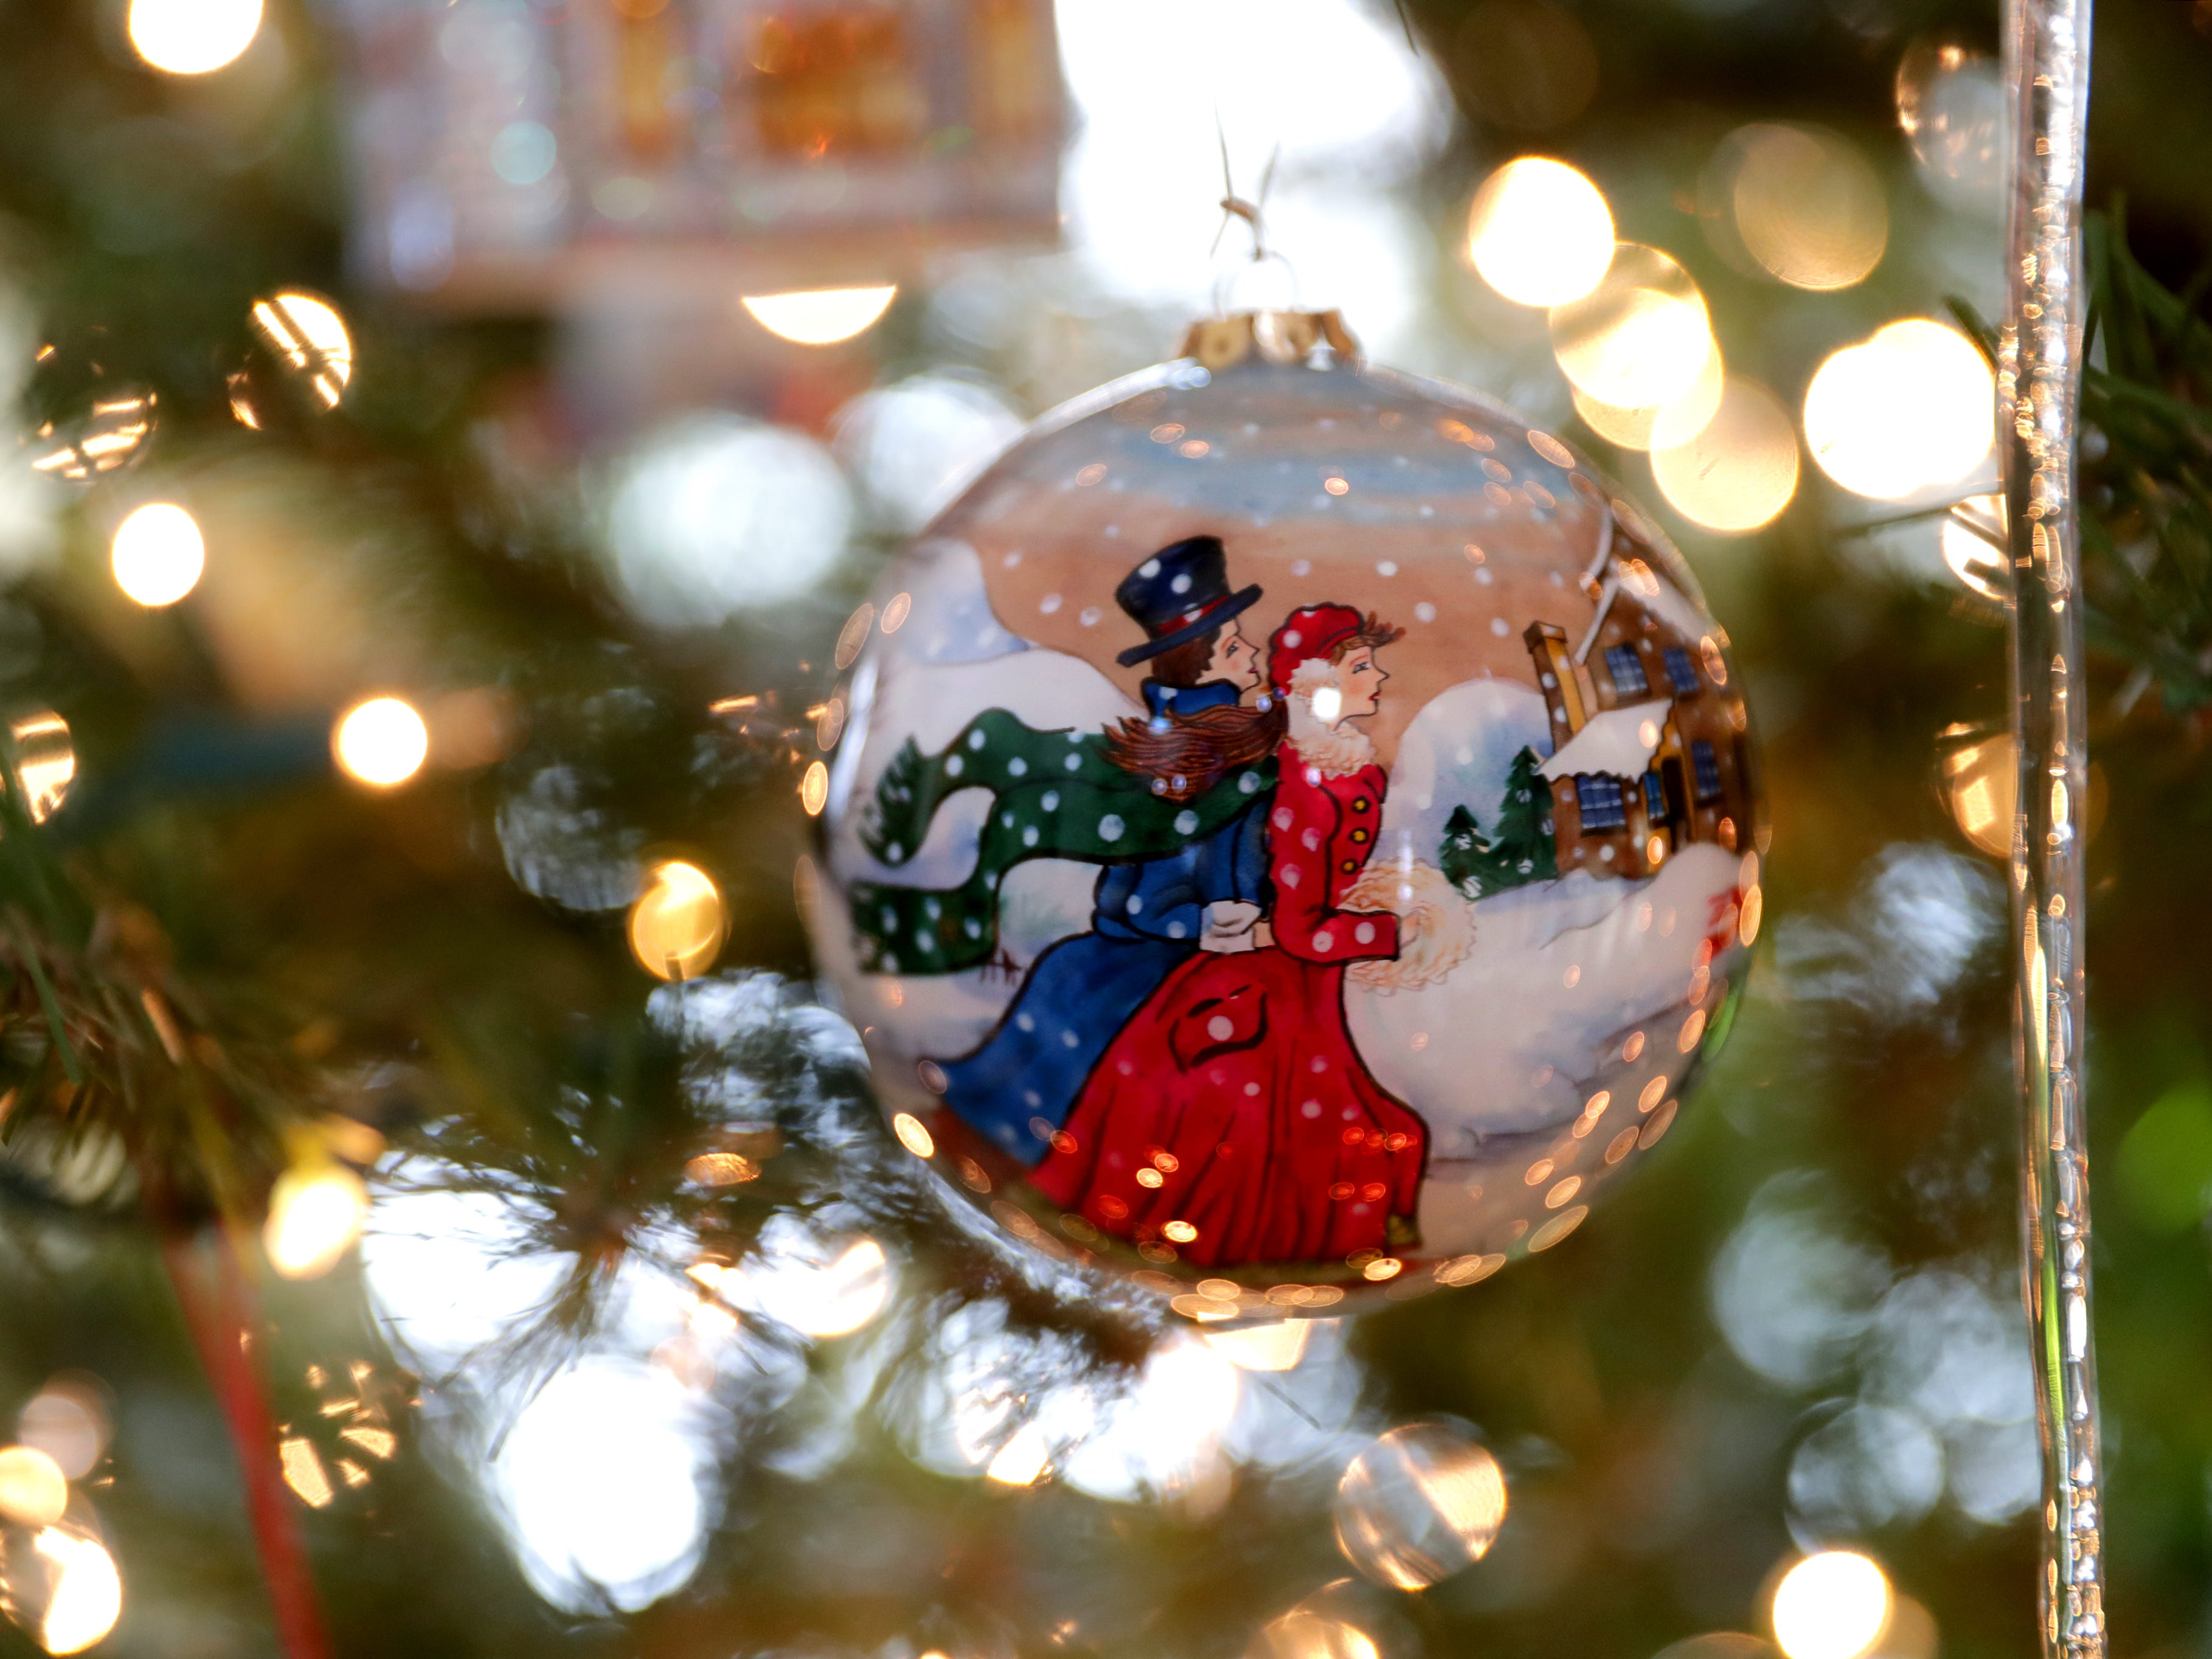 This handpainted ornament hanging on the 10-foot artificial tree in their living room came from Mackinac Island. It is one of Renee Sirny's favorites.